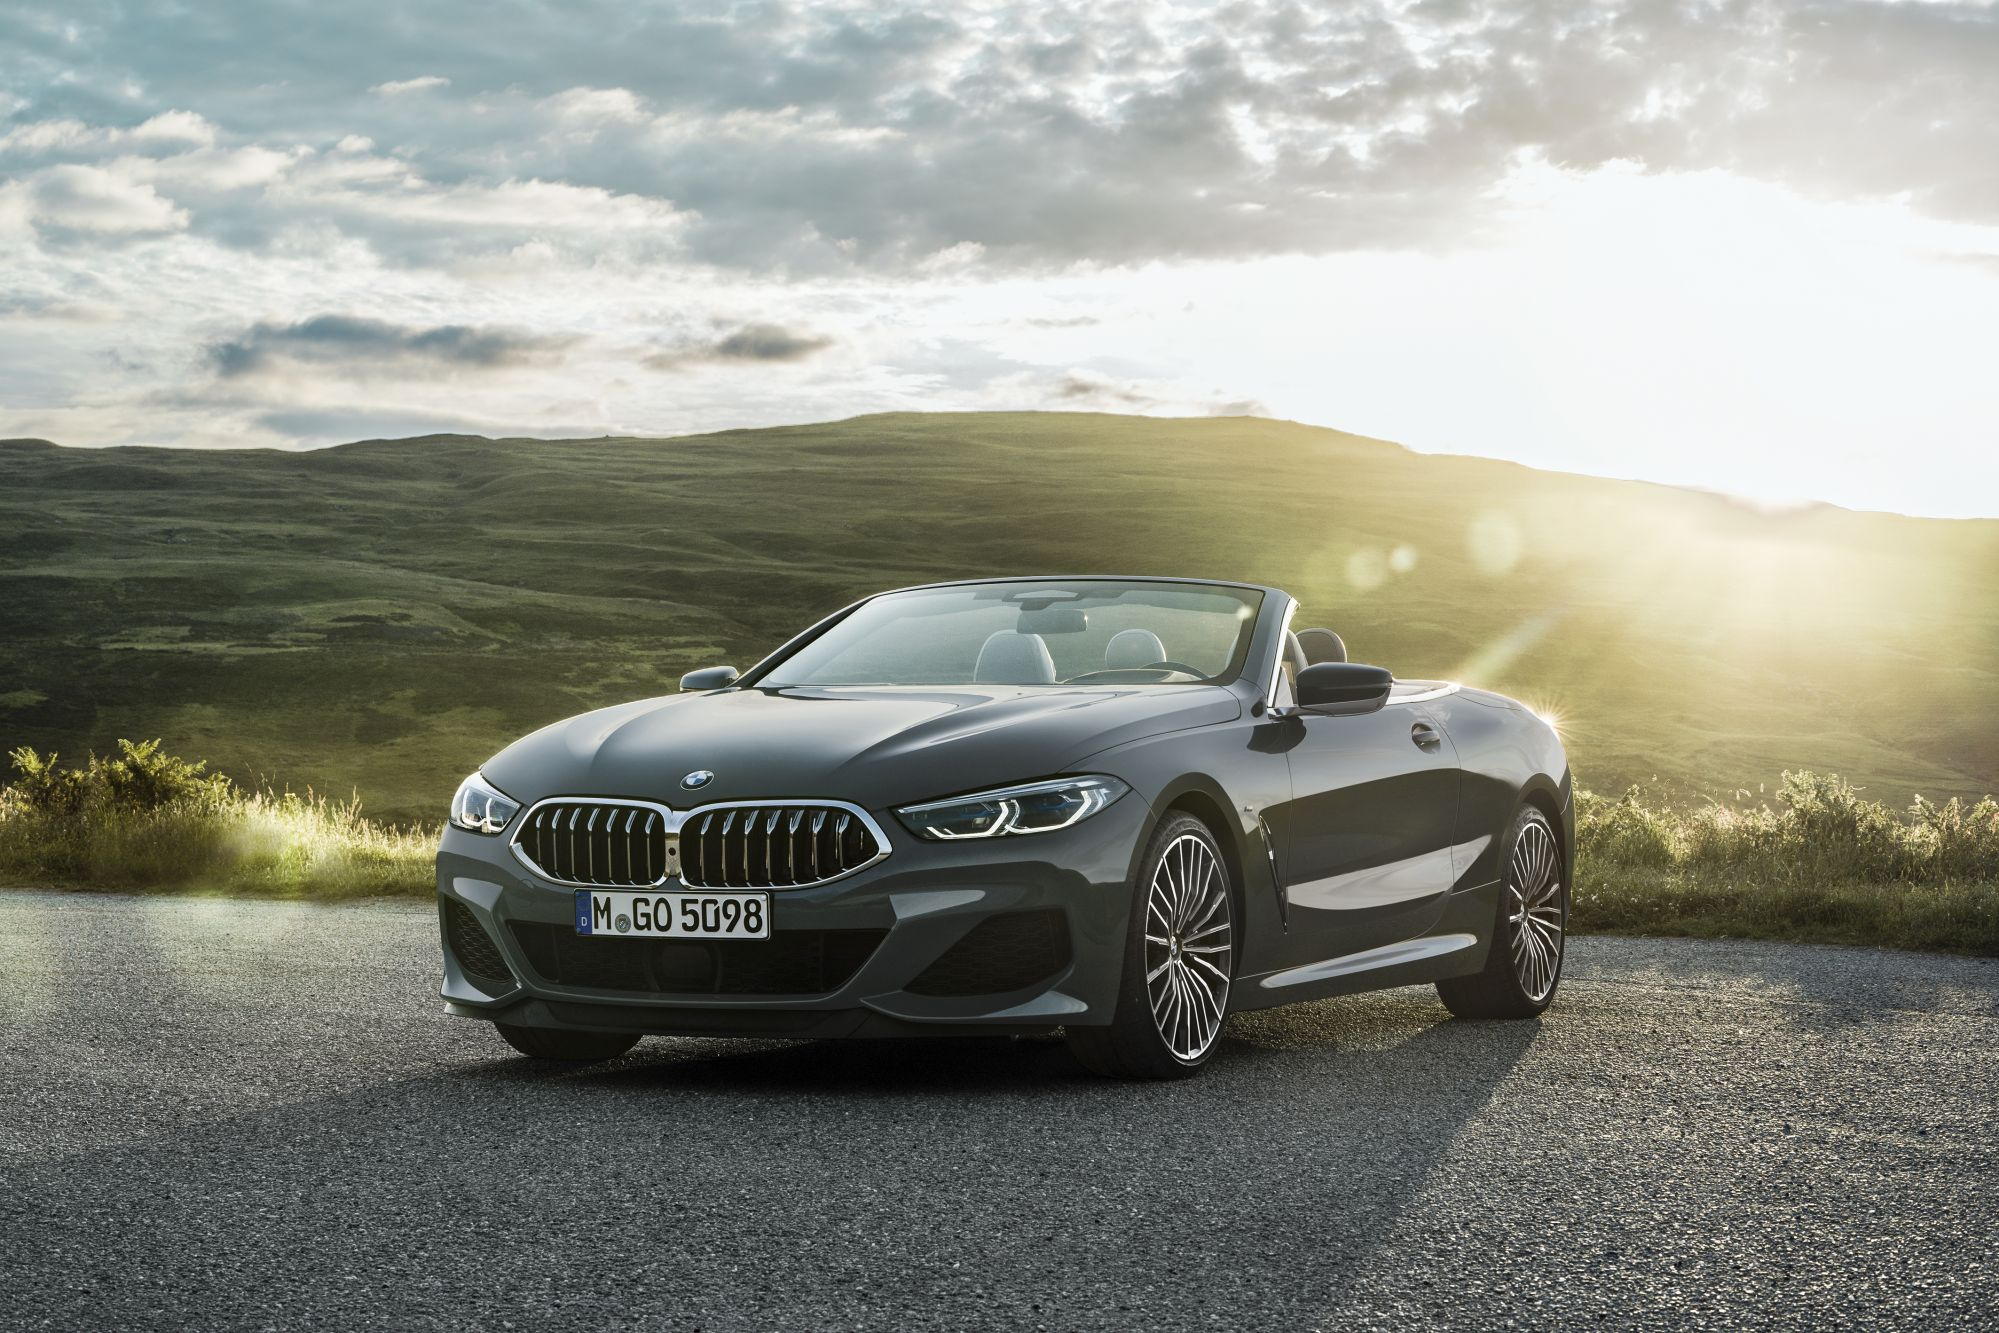 This New BMW 8 Series Convertible Will Hit The Roads In 2019